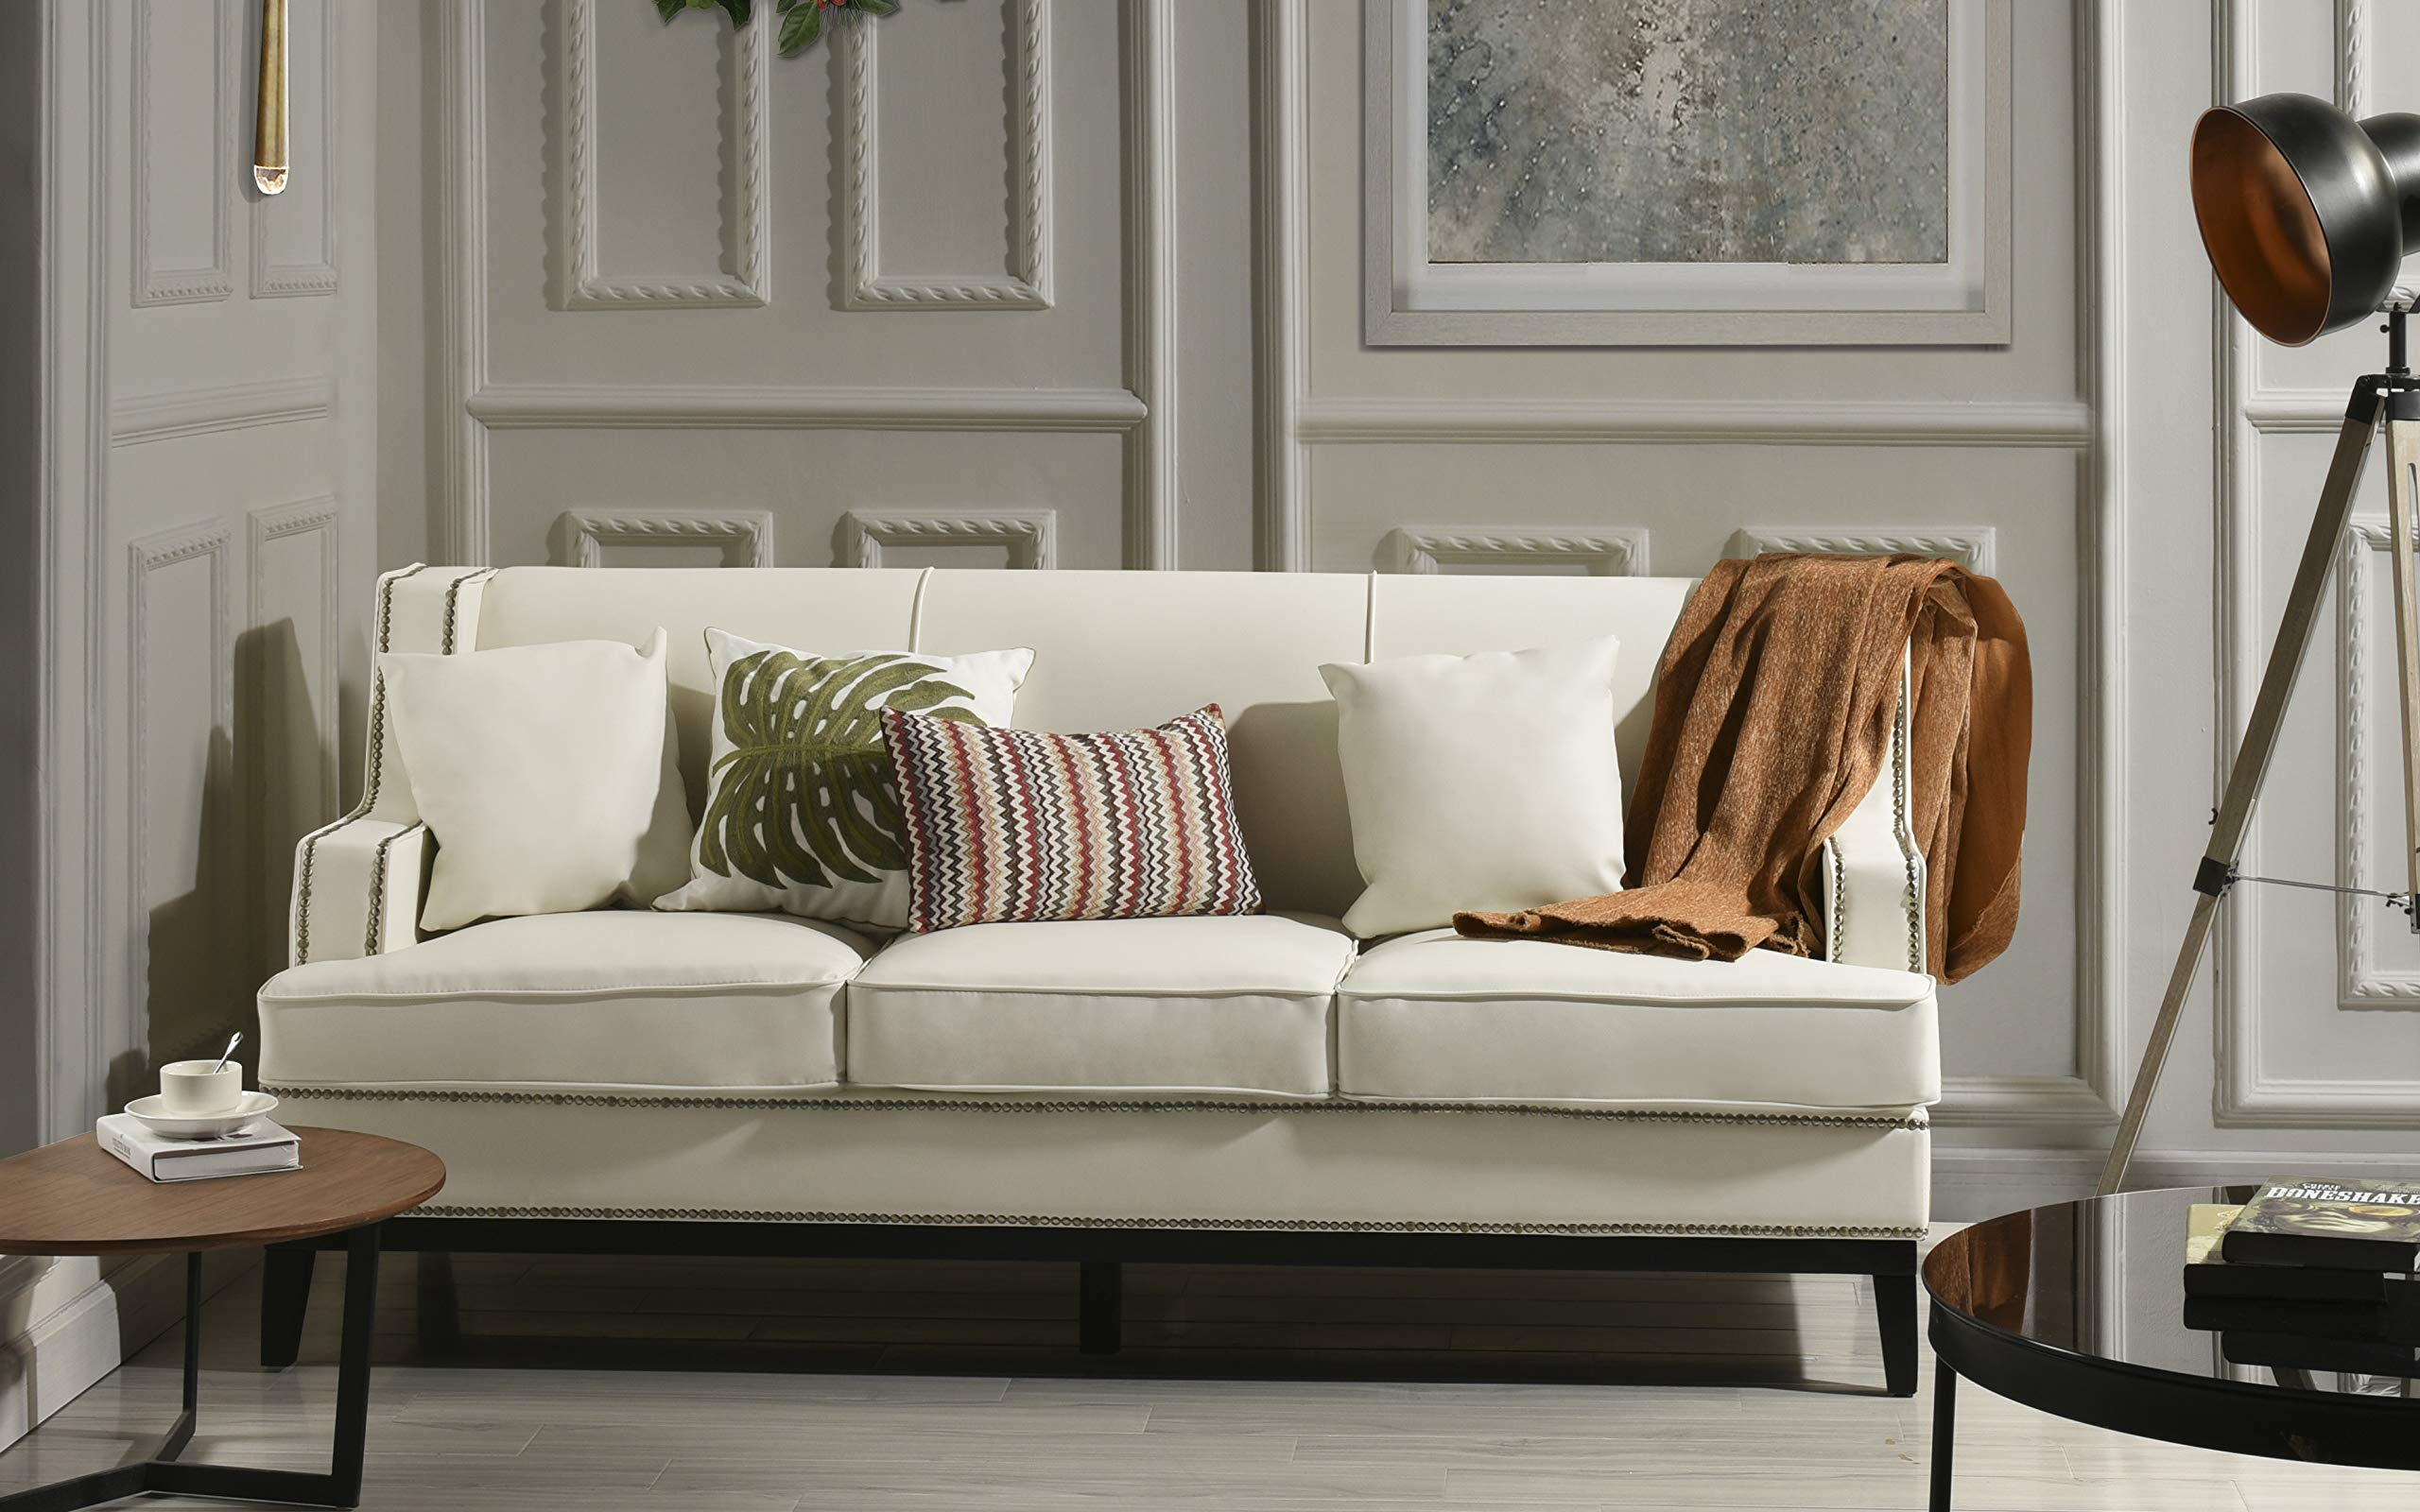 Modern Bonded Leather Sofa with Nailhead Trim Detail (White) by Divano Roma Furniture